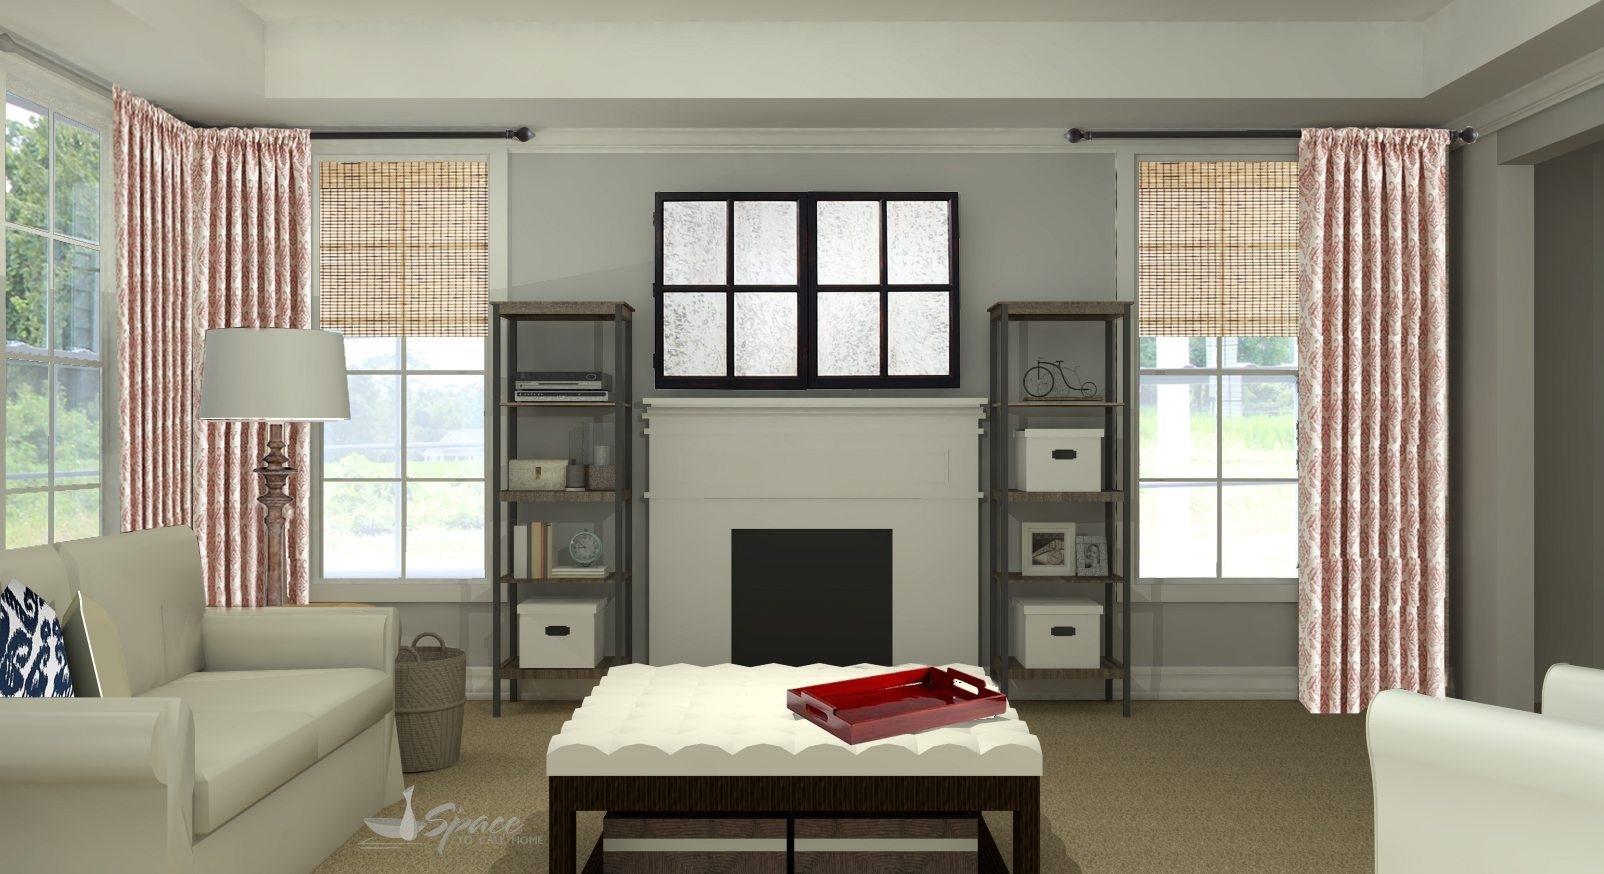 virtual living room design livingrondo hol best images virtua ome esigns